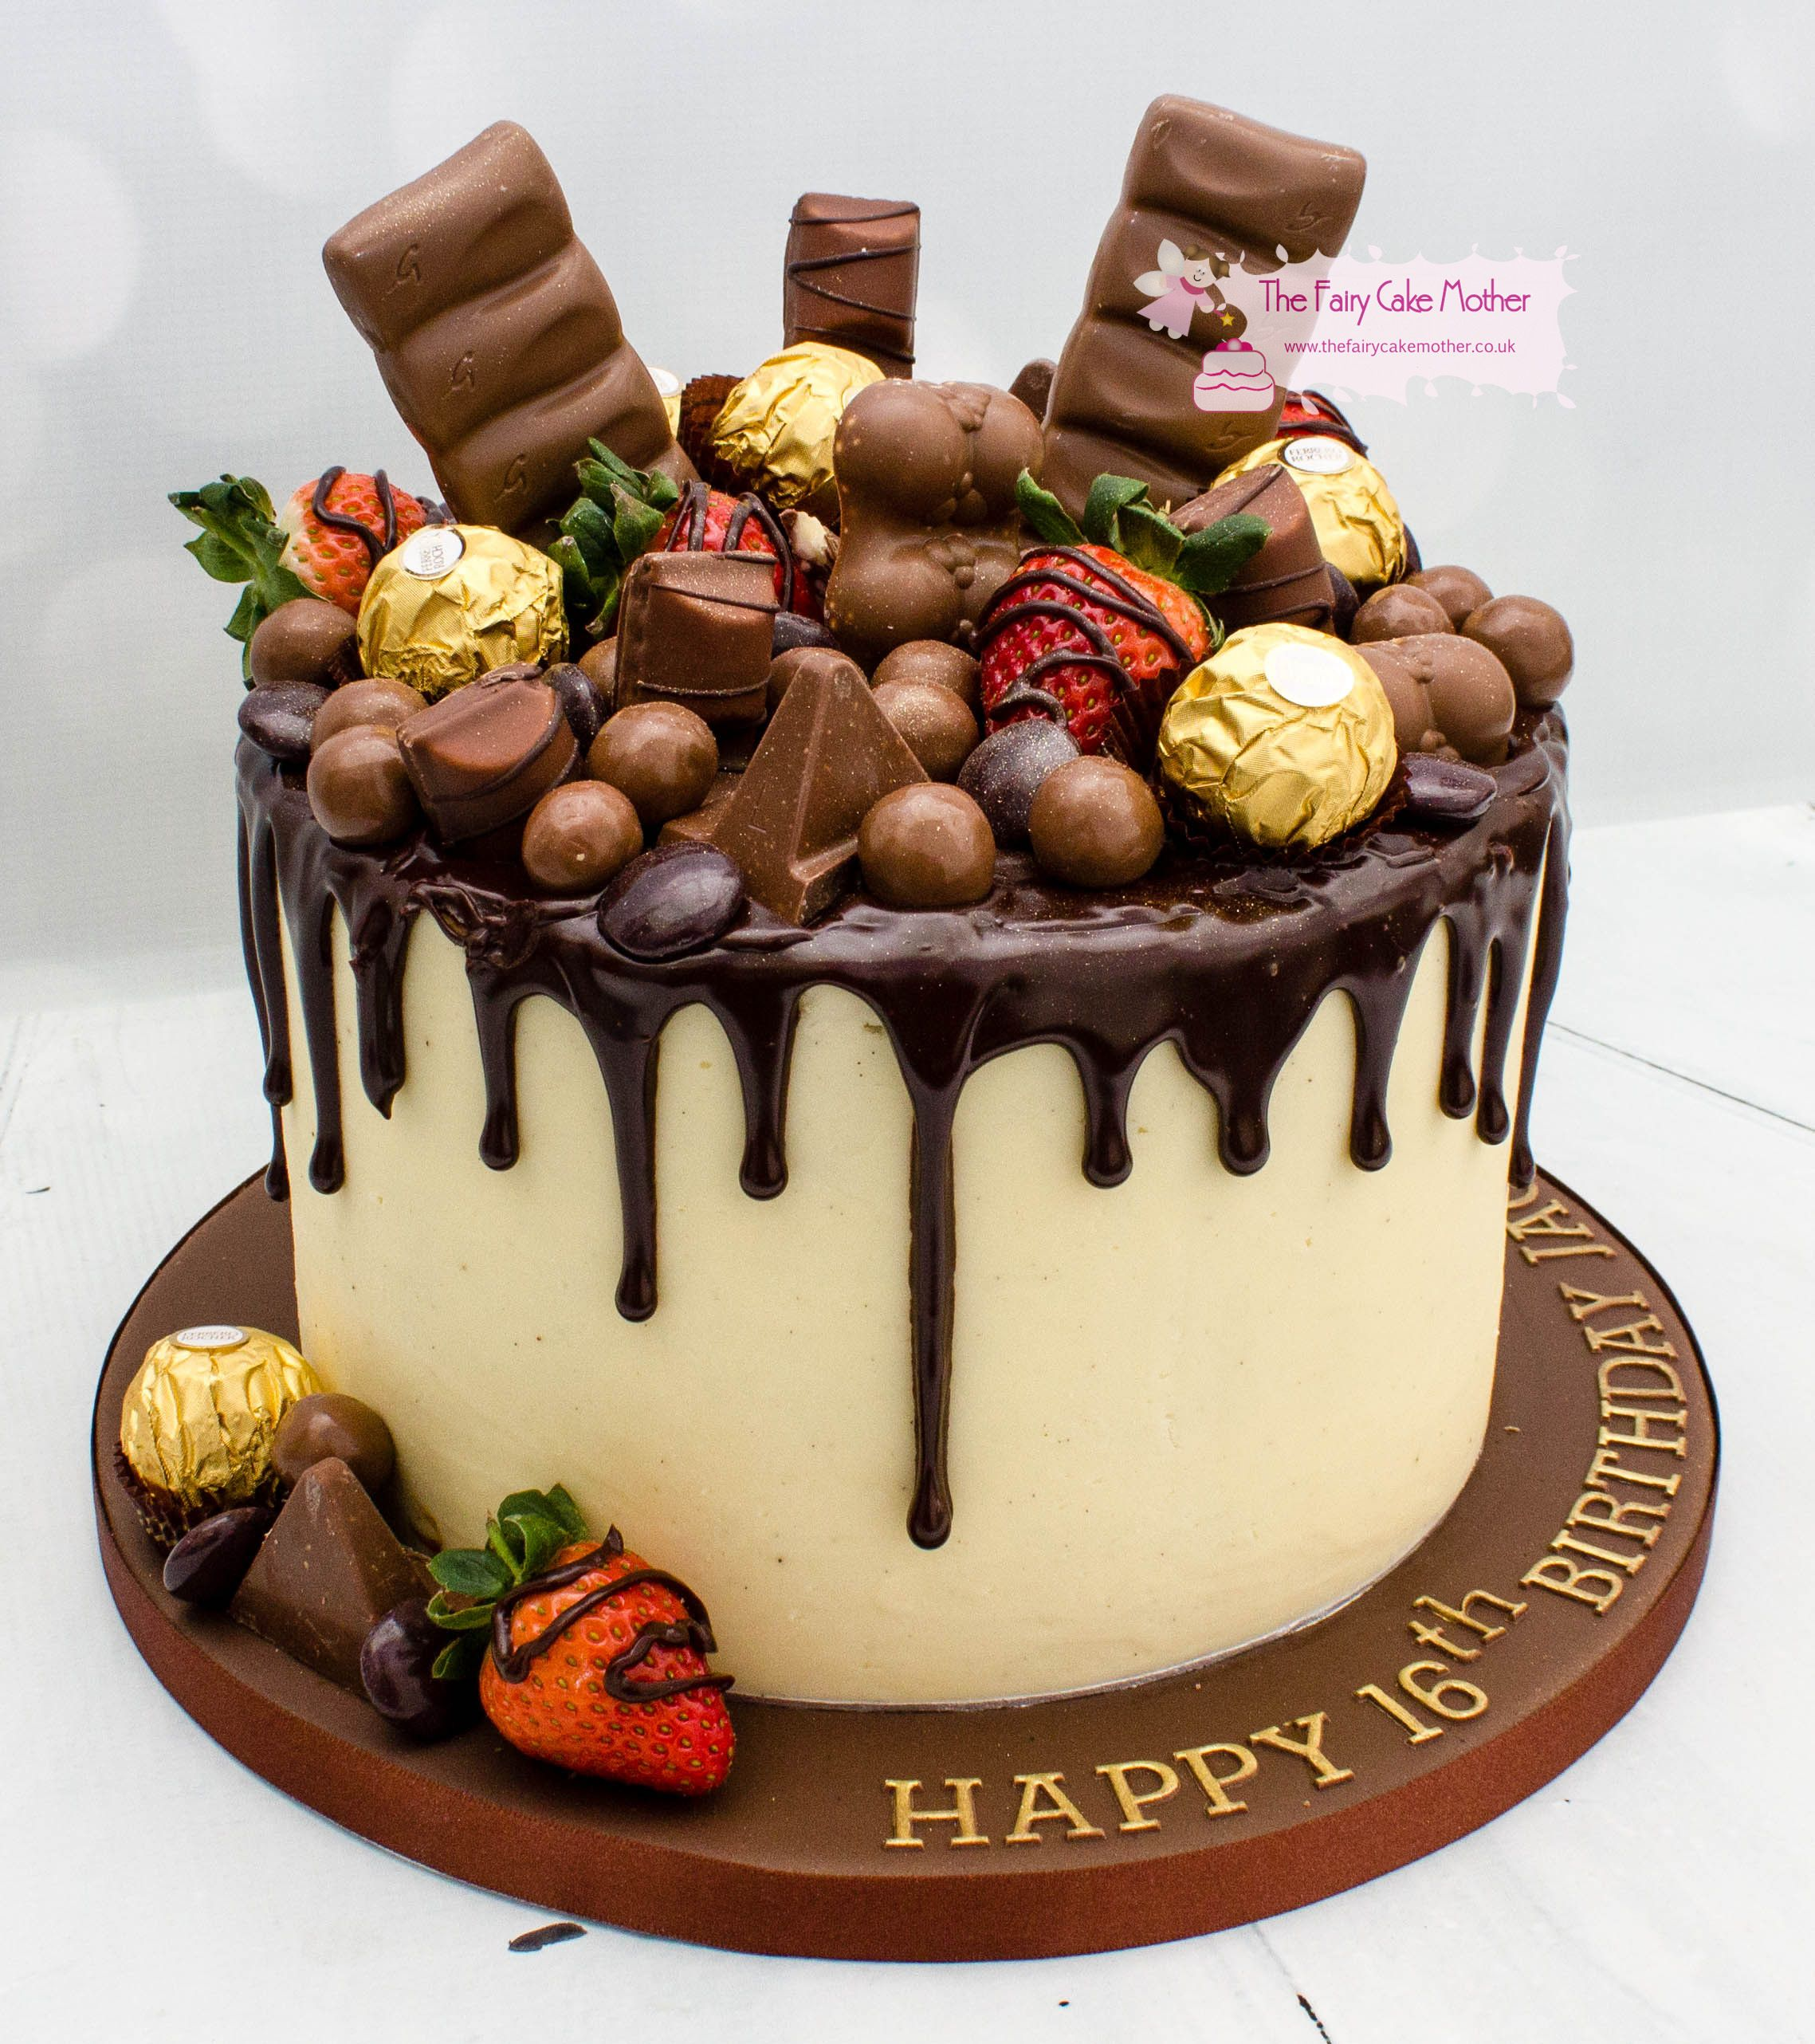 Surprising Chocolate Drip Cake Birthday Cake Chocolate Drip Cakes Funny Birthday Cards Online Inifodamsfinfo